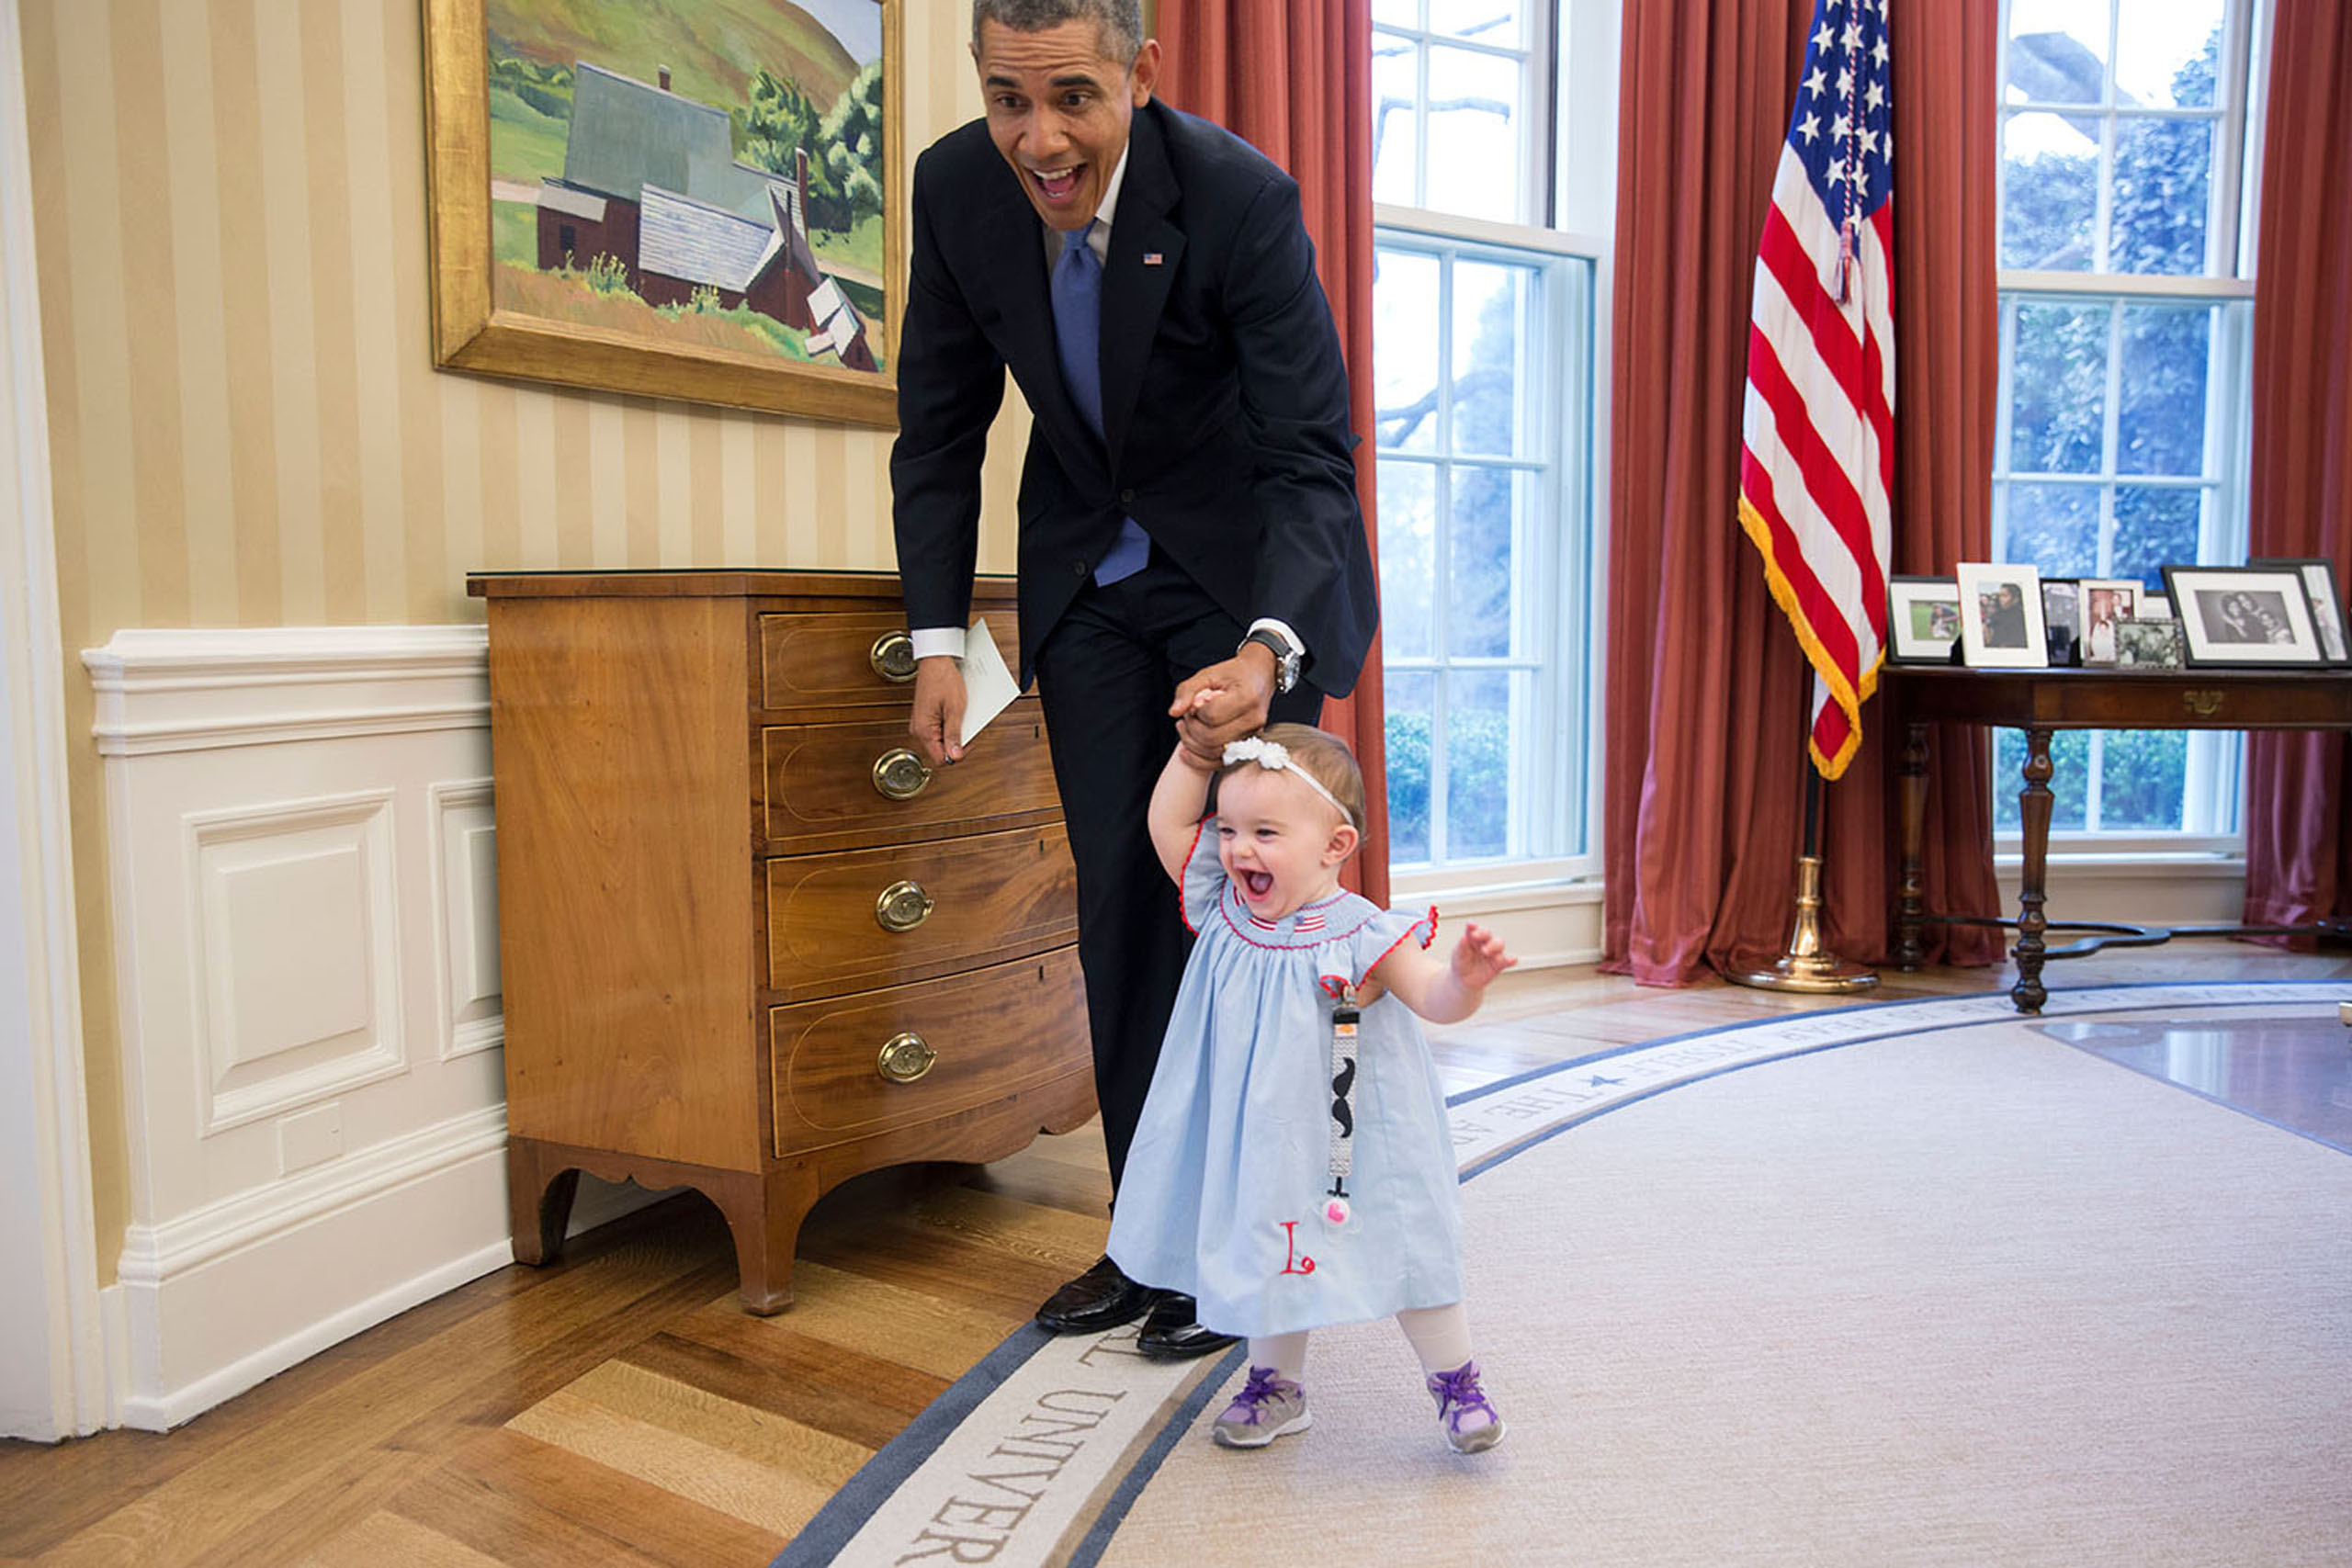 President Barack Obama walks with Lincoln Rose Pierce Smith, the daughter of former Deputy Press Secretary Jamie Smith, in the Oval Office, on April 4, 2014.